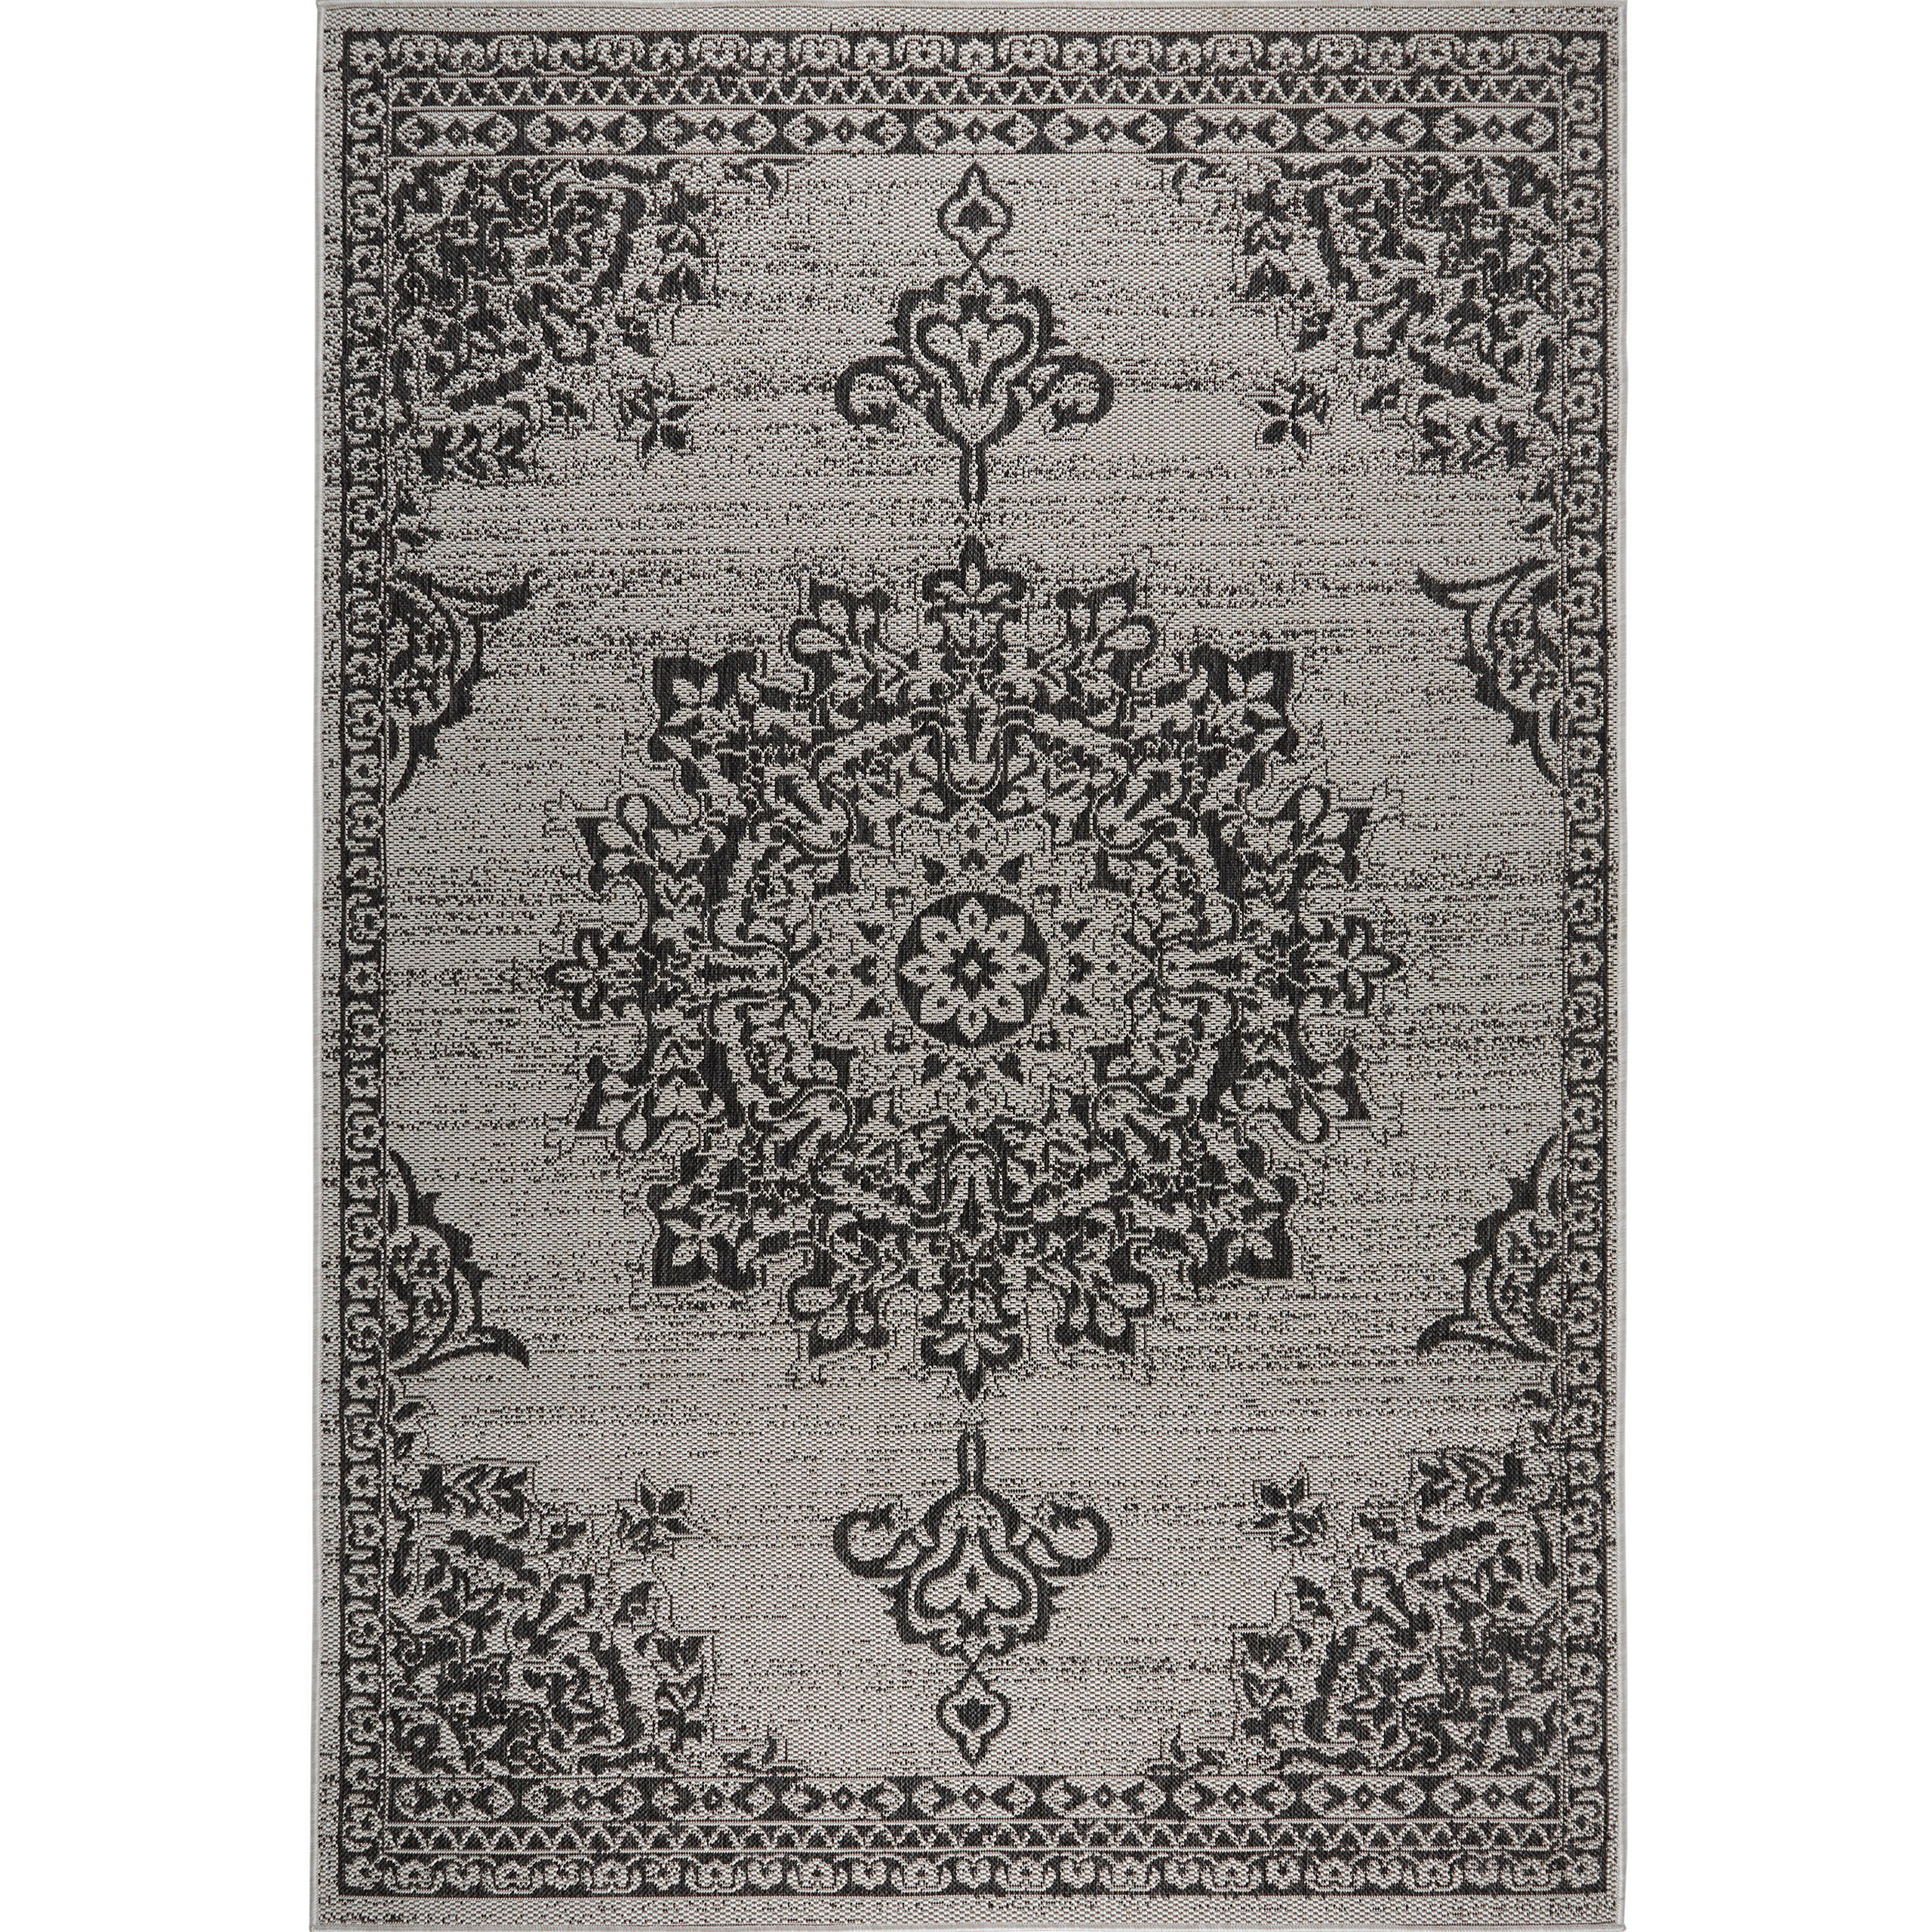 Home Dynamix Nicole Miller Patio Country Azalea Indoor/Outdoor Area Rug 7'9''x10'2'', Traditional Medallion Gray/Black by Home Dynamix (Image #2)